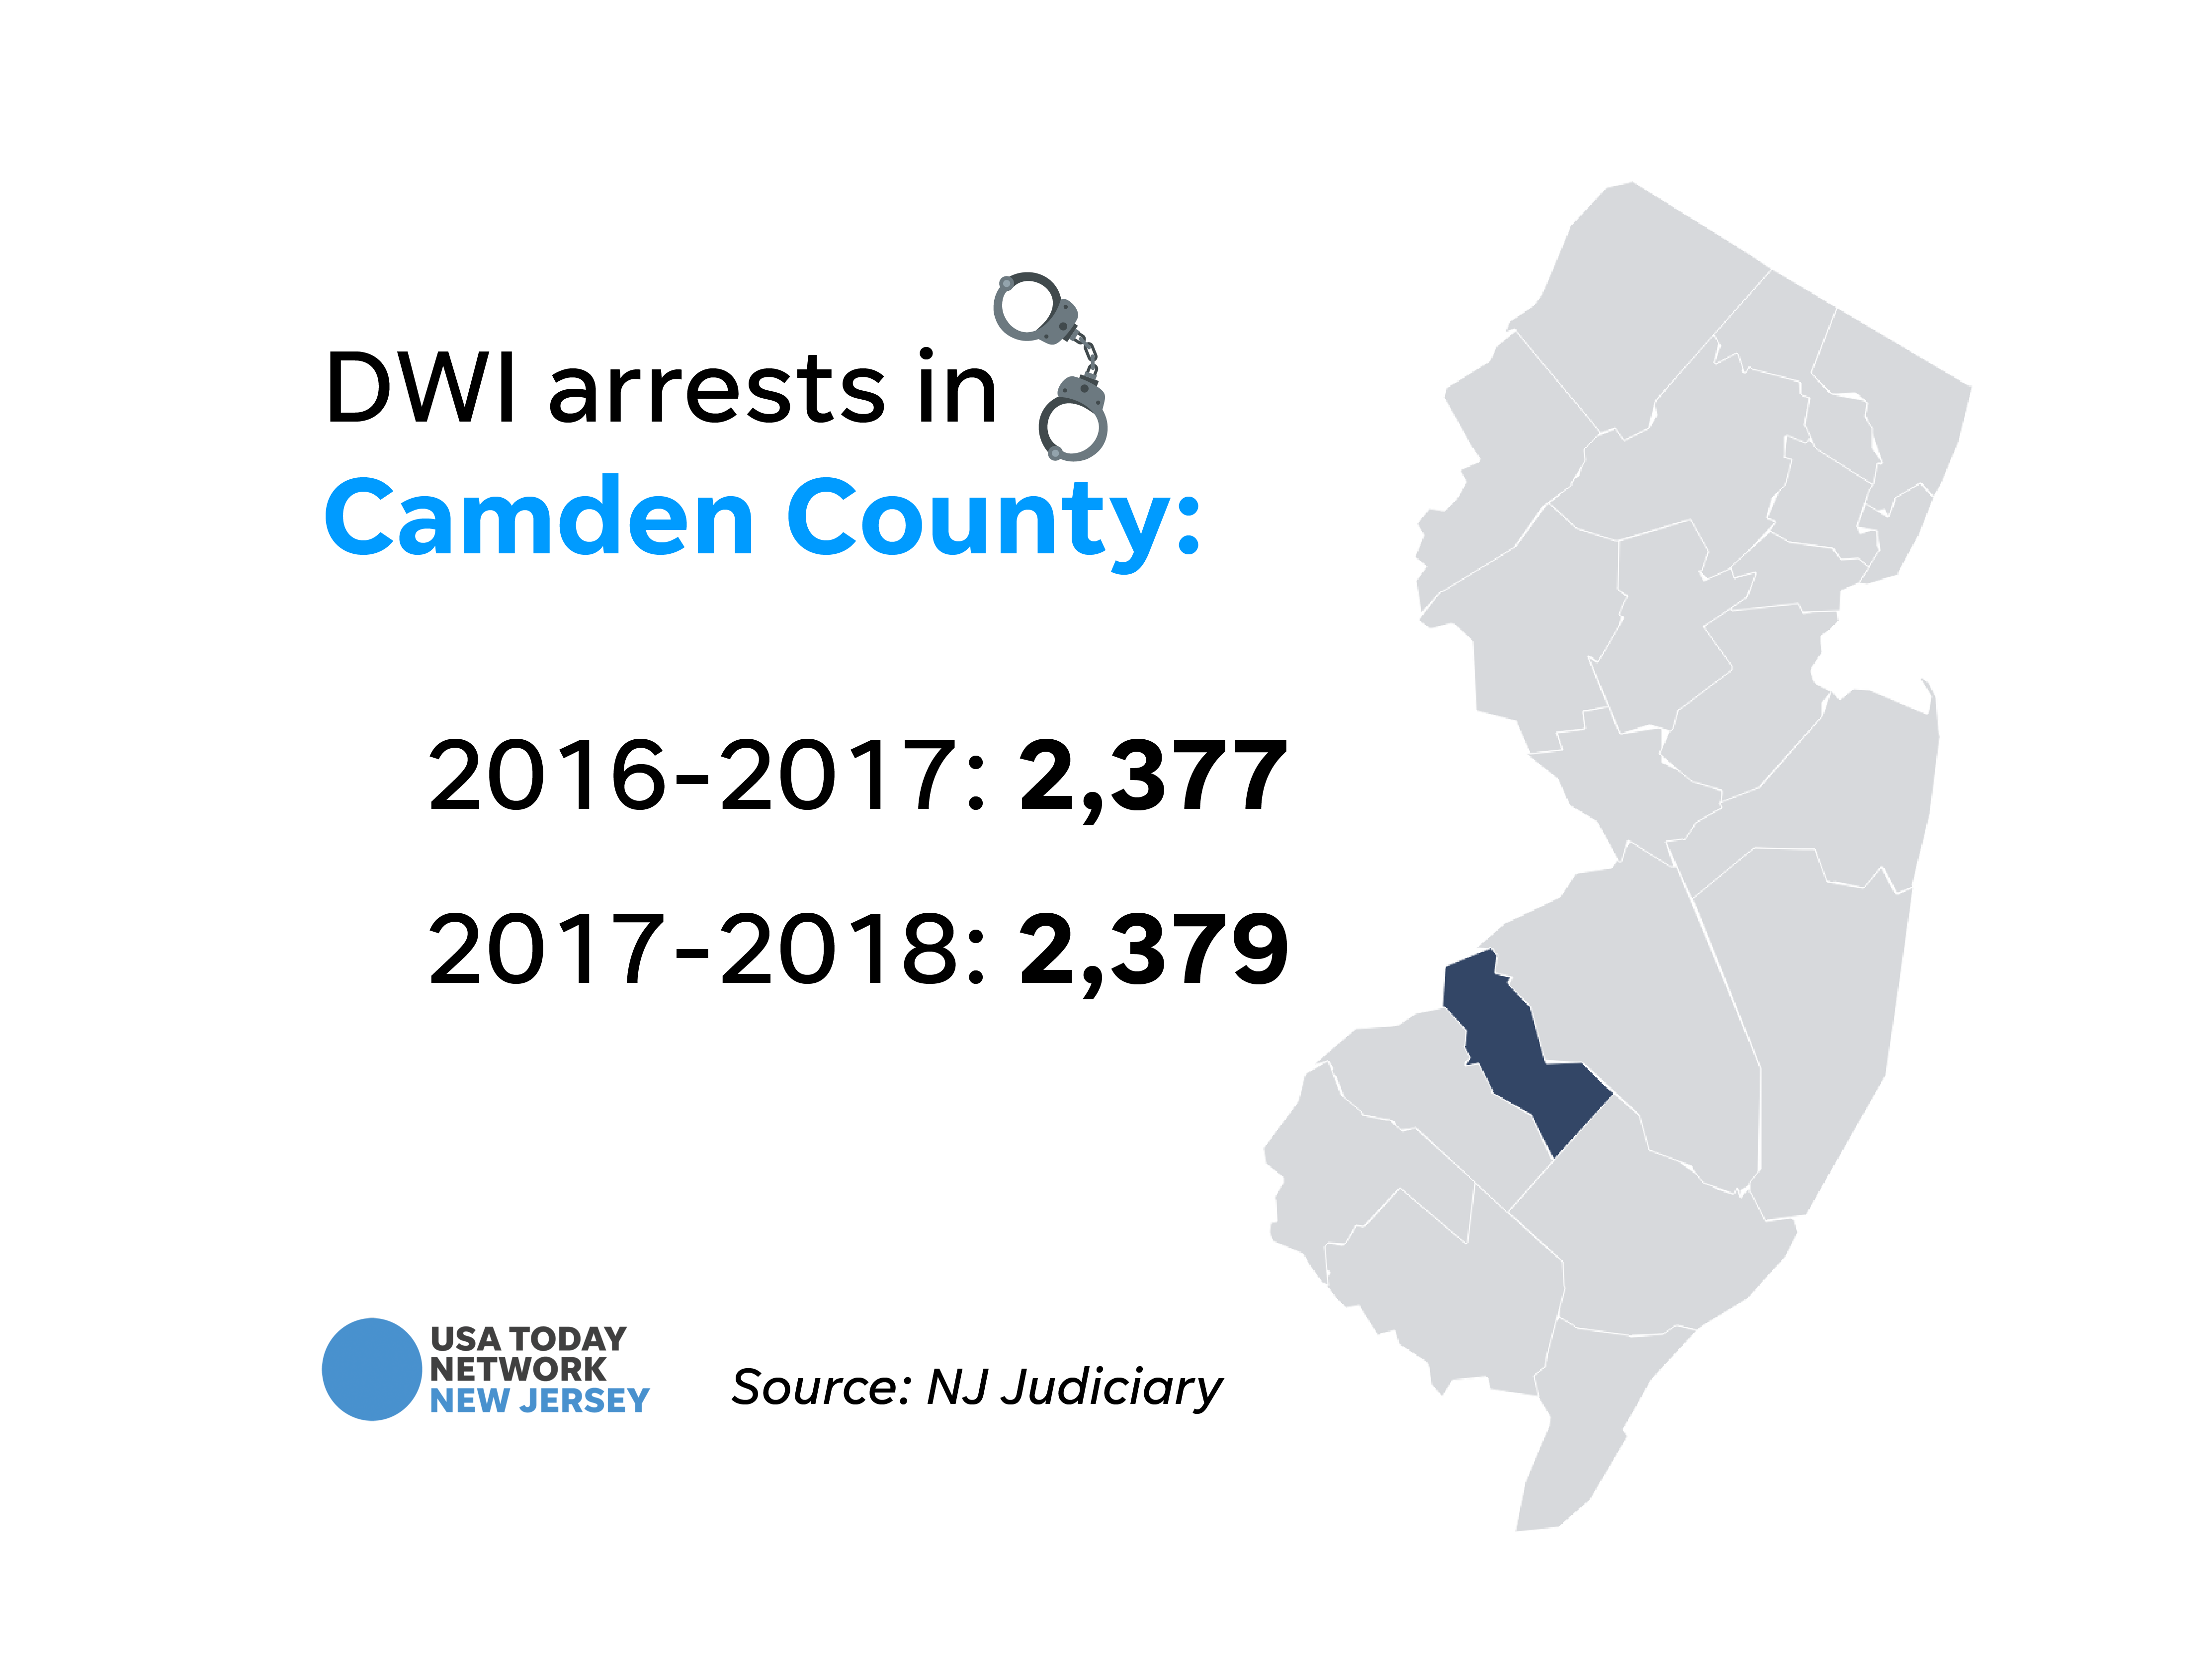 DWI arrests in Camden County.